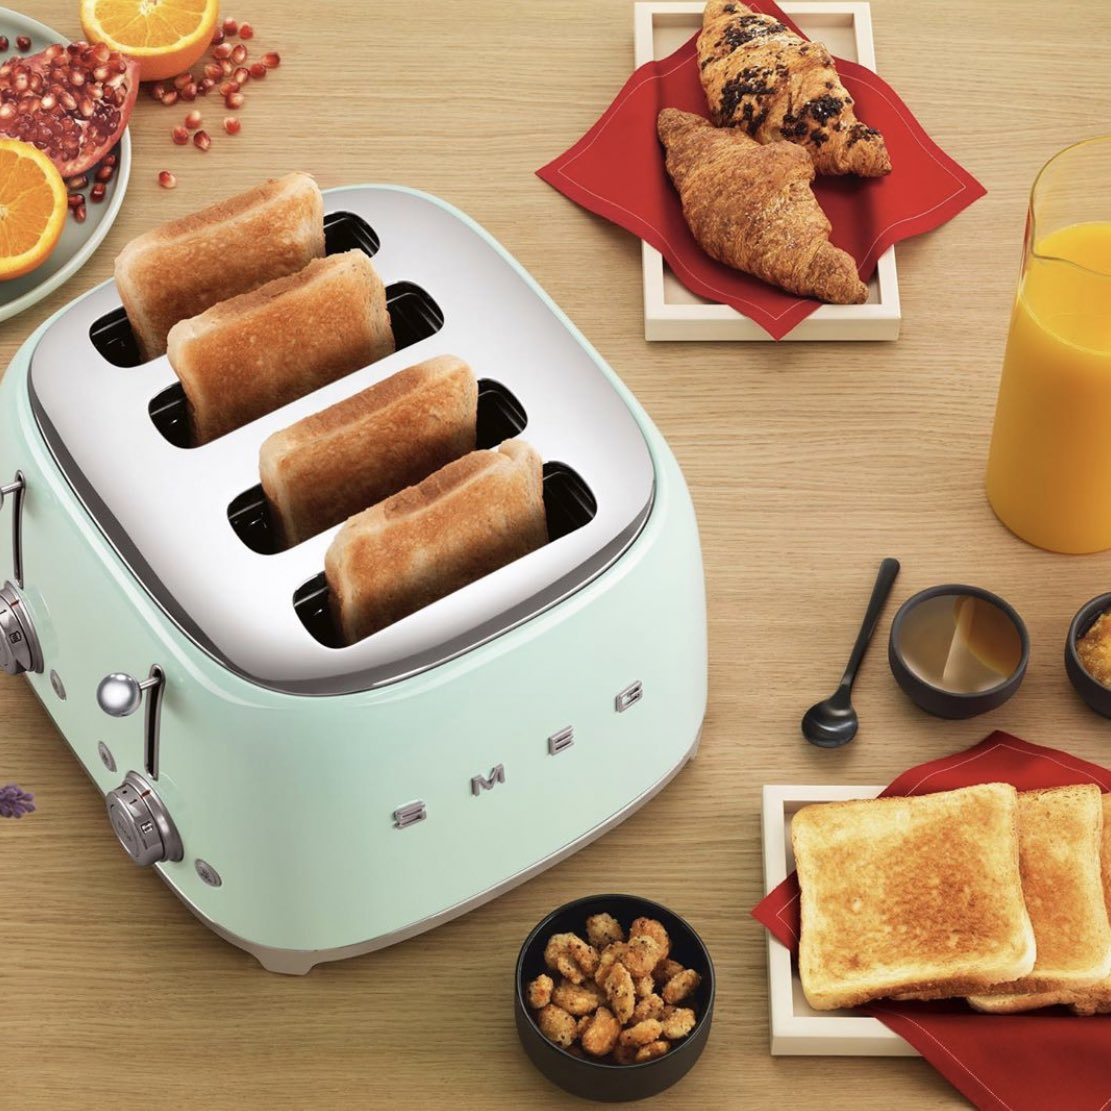 Interiors とじまと On Twitter Good Morning Relax The Weekend Is Almost There Keep Calm And Smeg Off P S Harga Toaster Smeg Dari Rm980